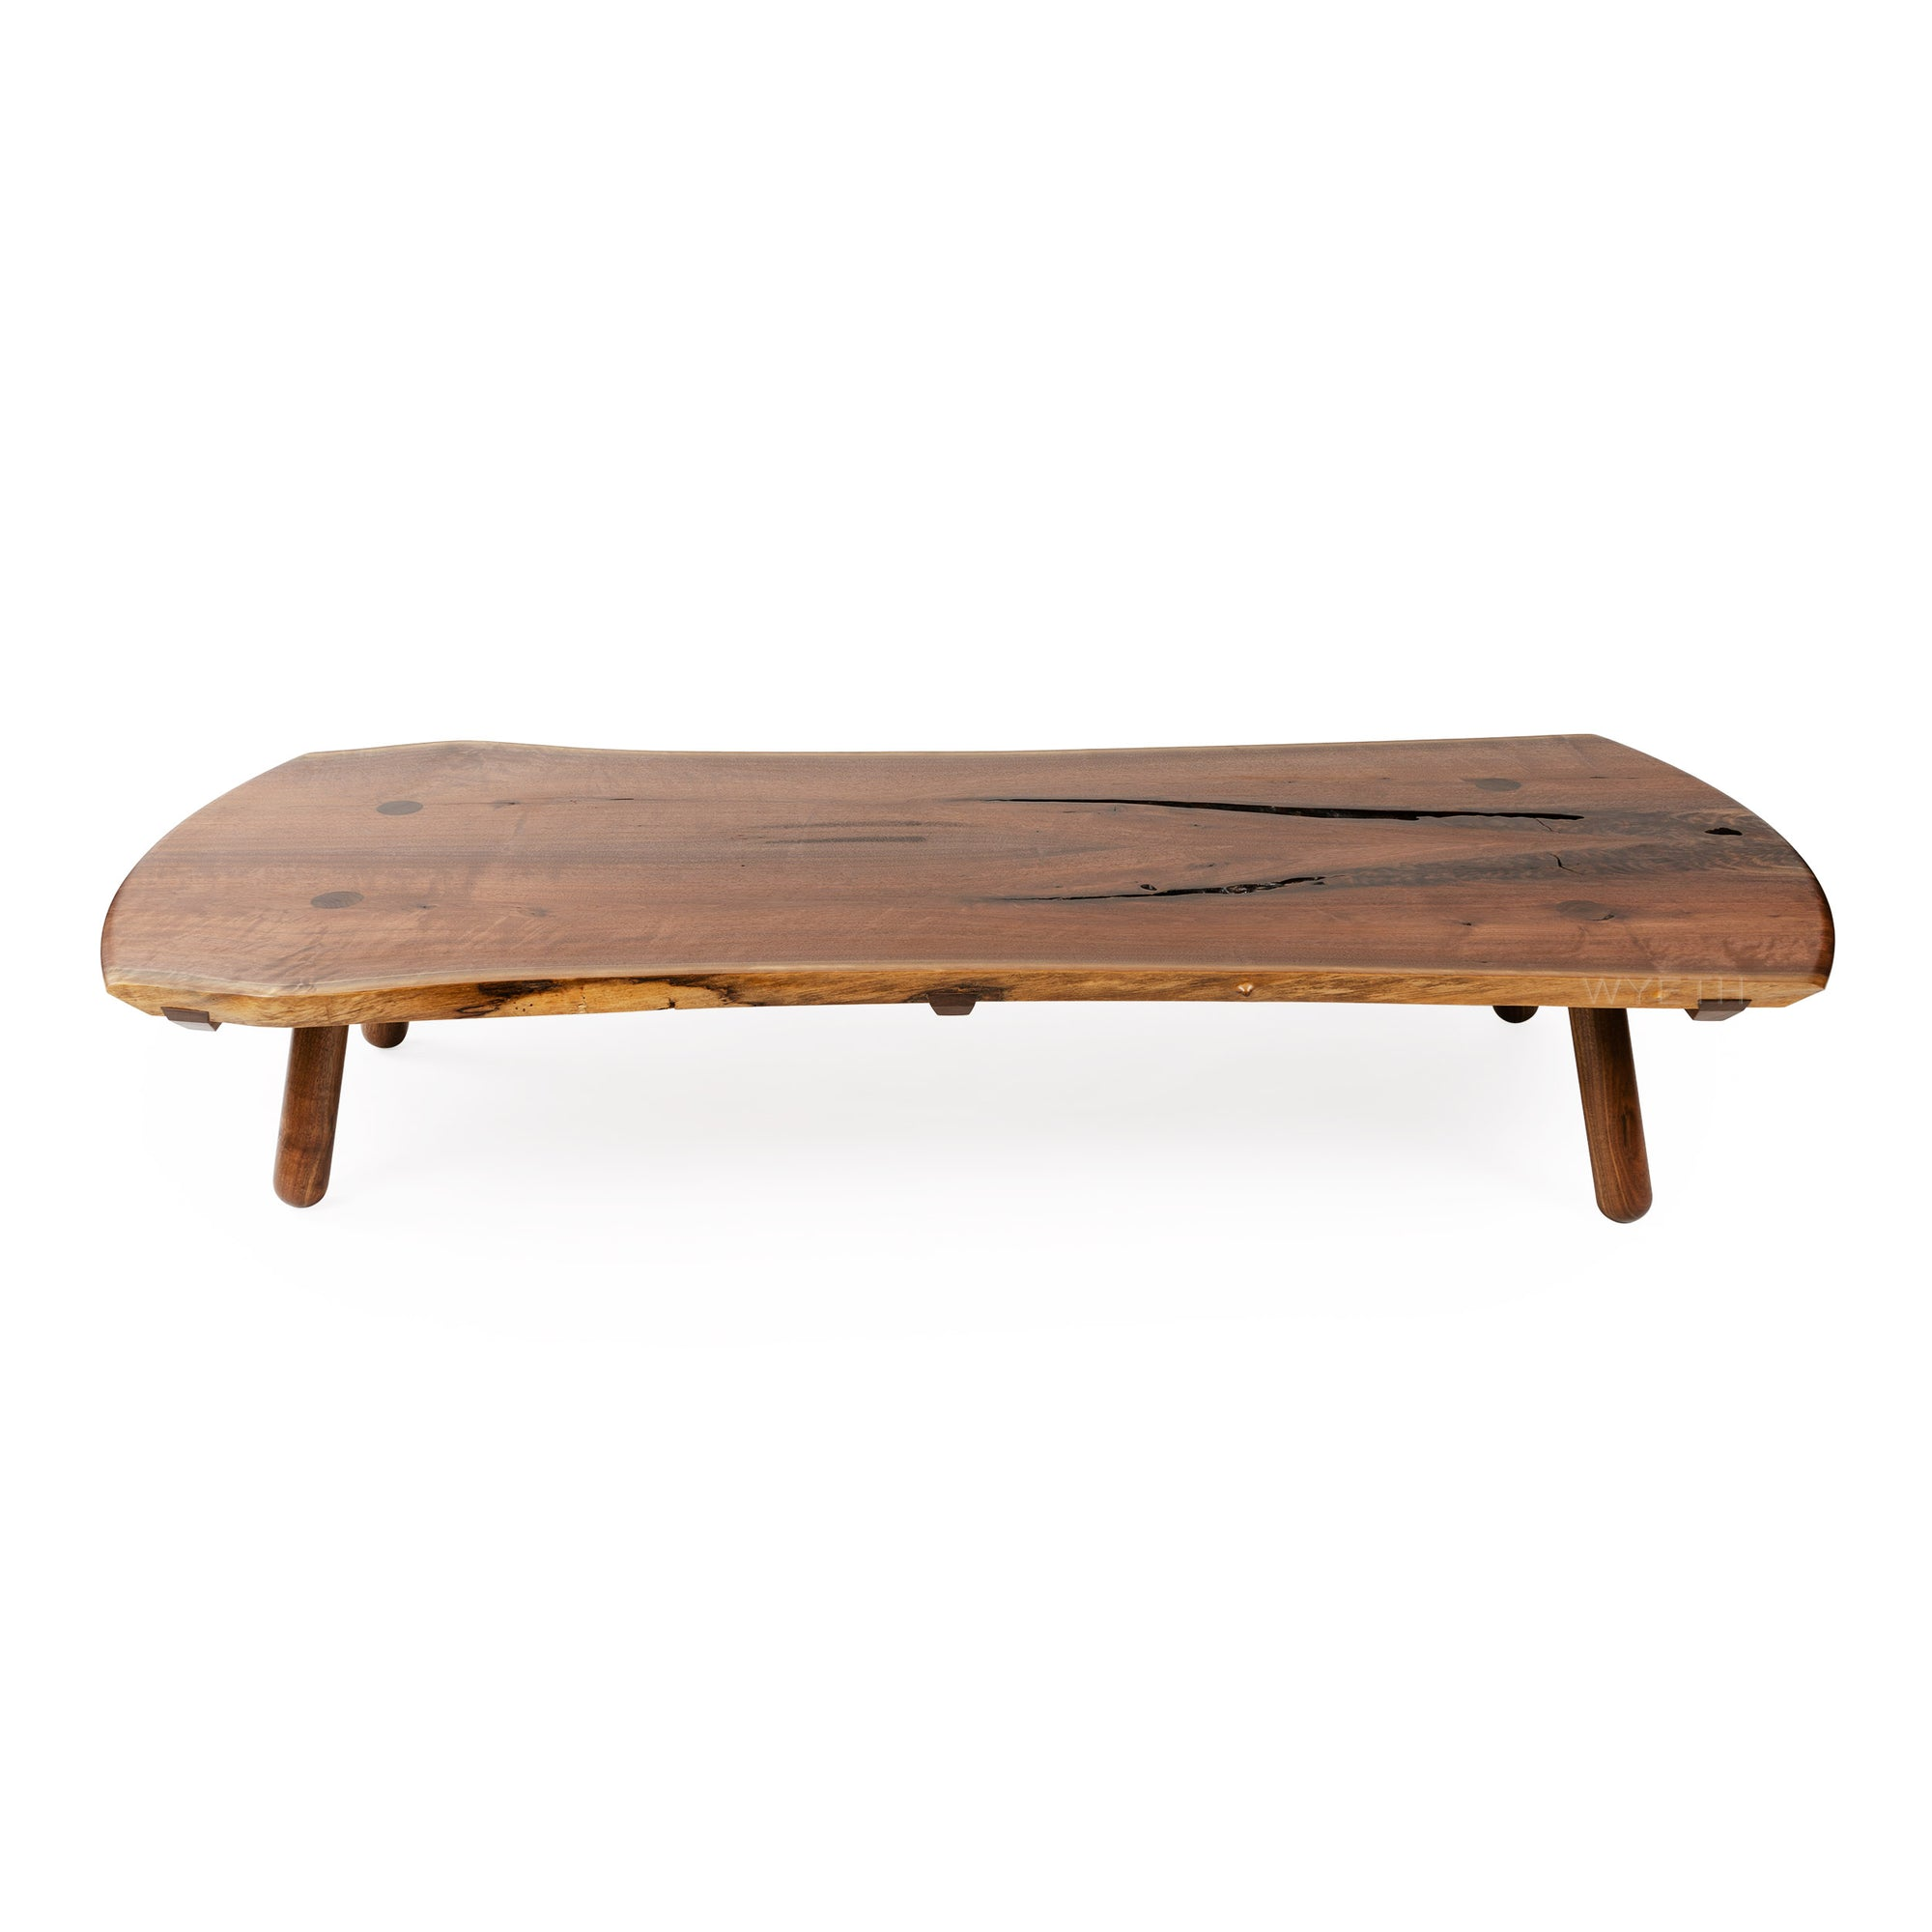 WYETH Original Sliding Dovetail Low Table